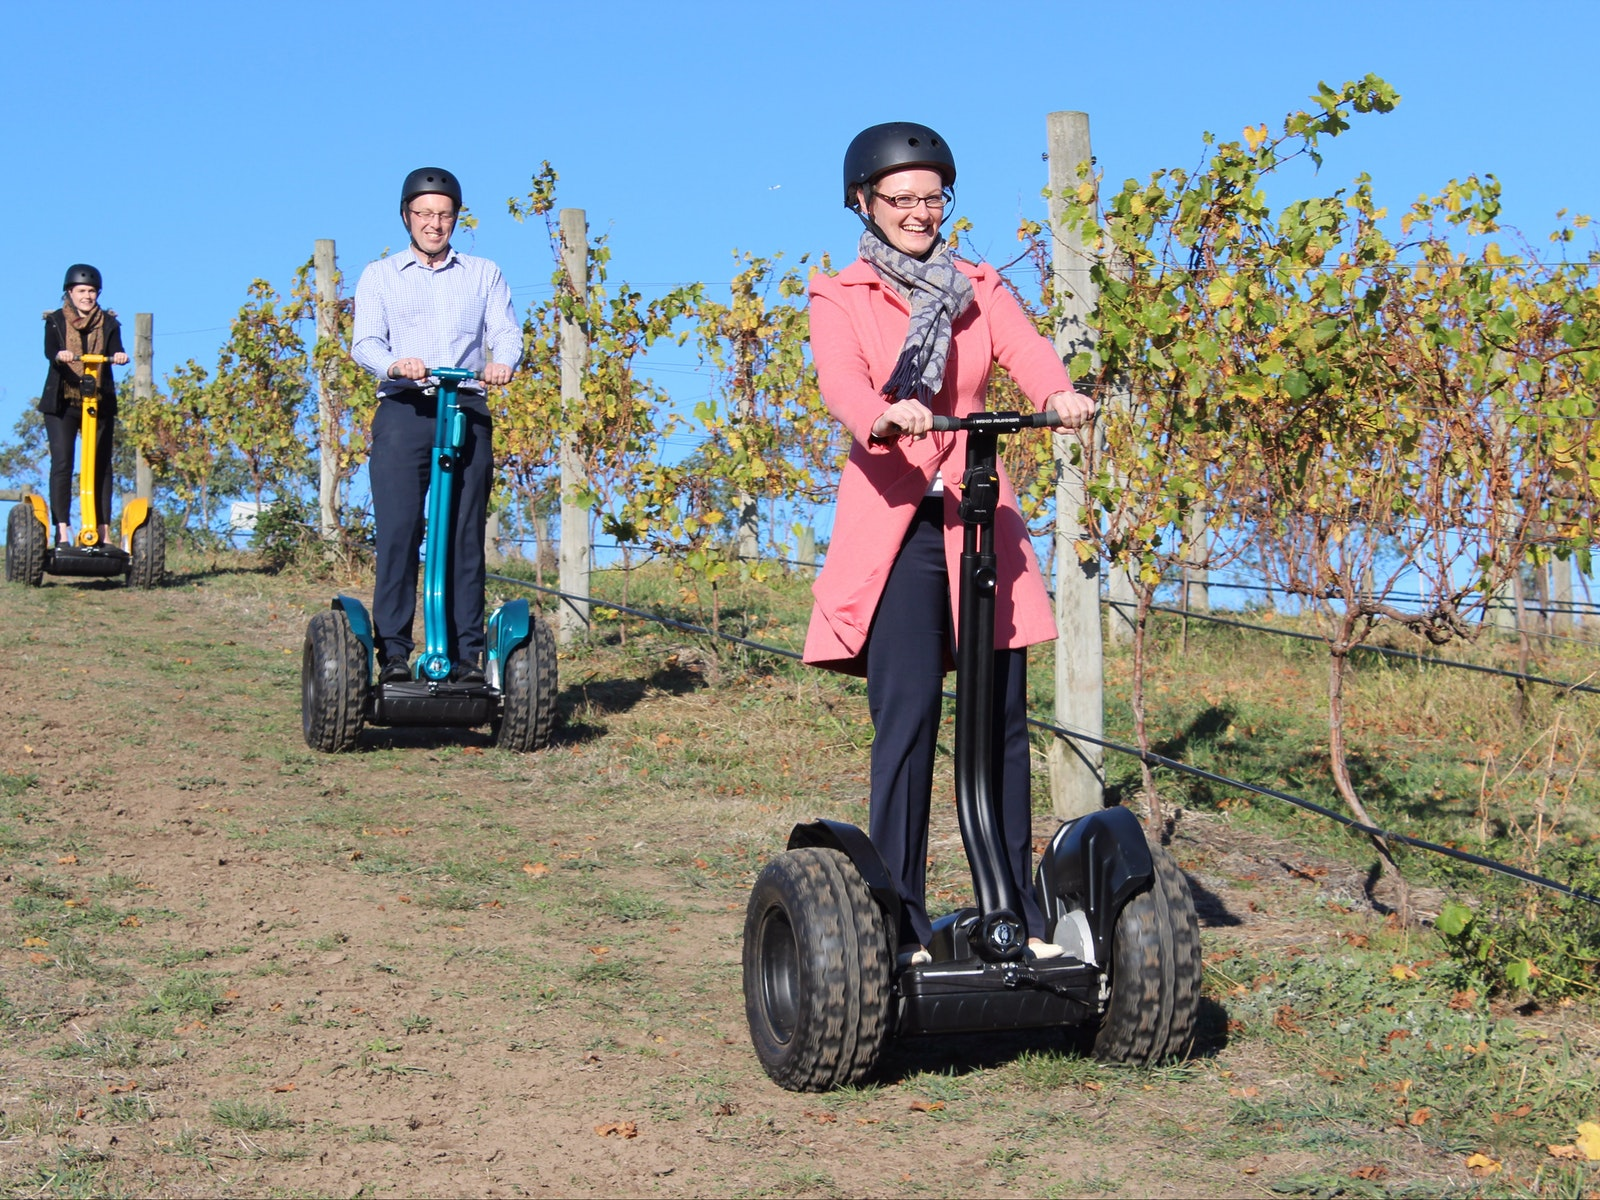 Riding a Segway around the Balgownie Resort